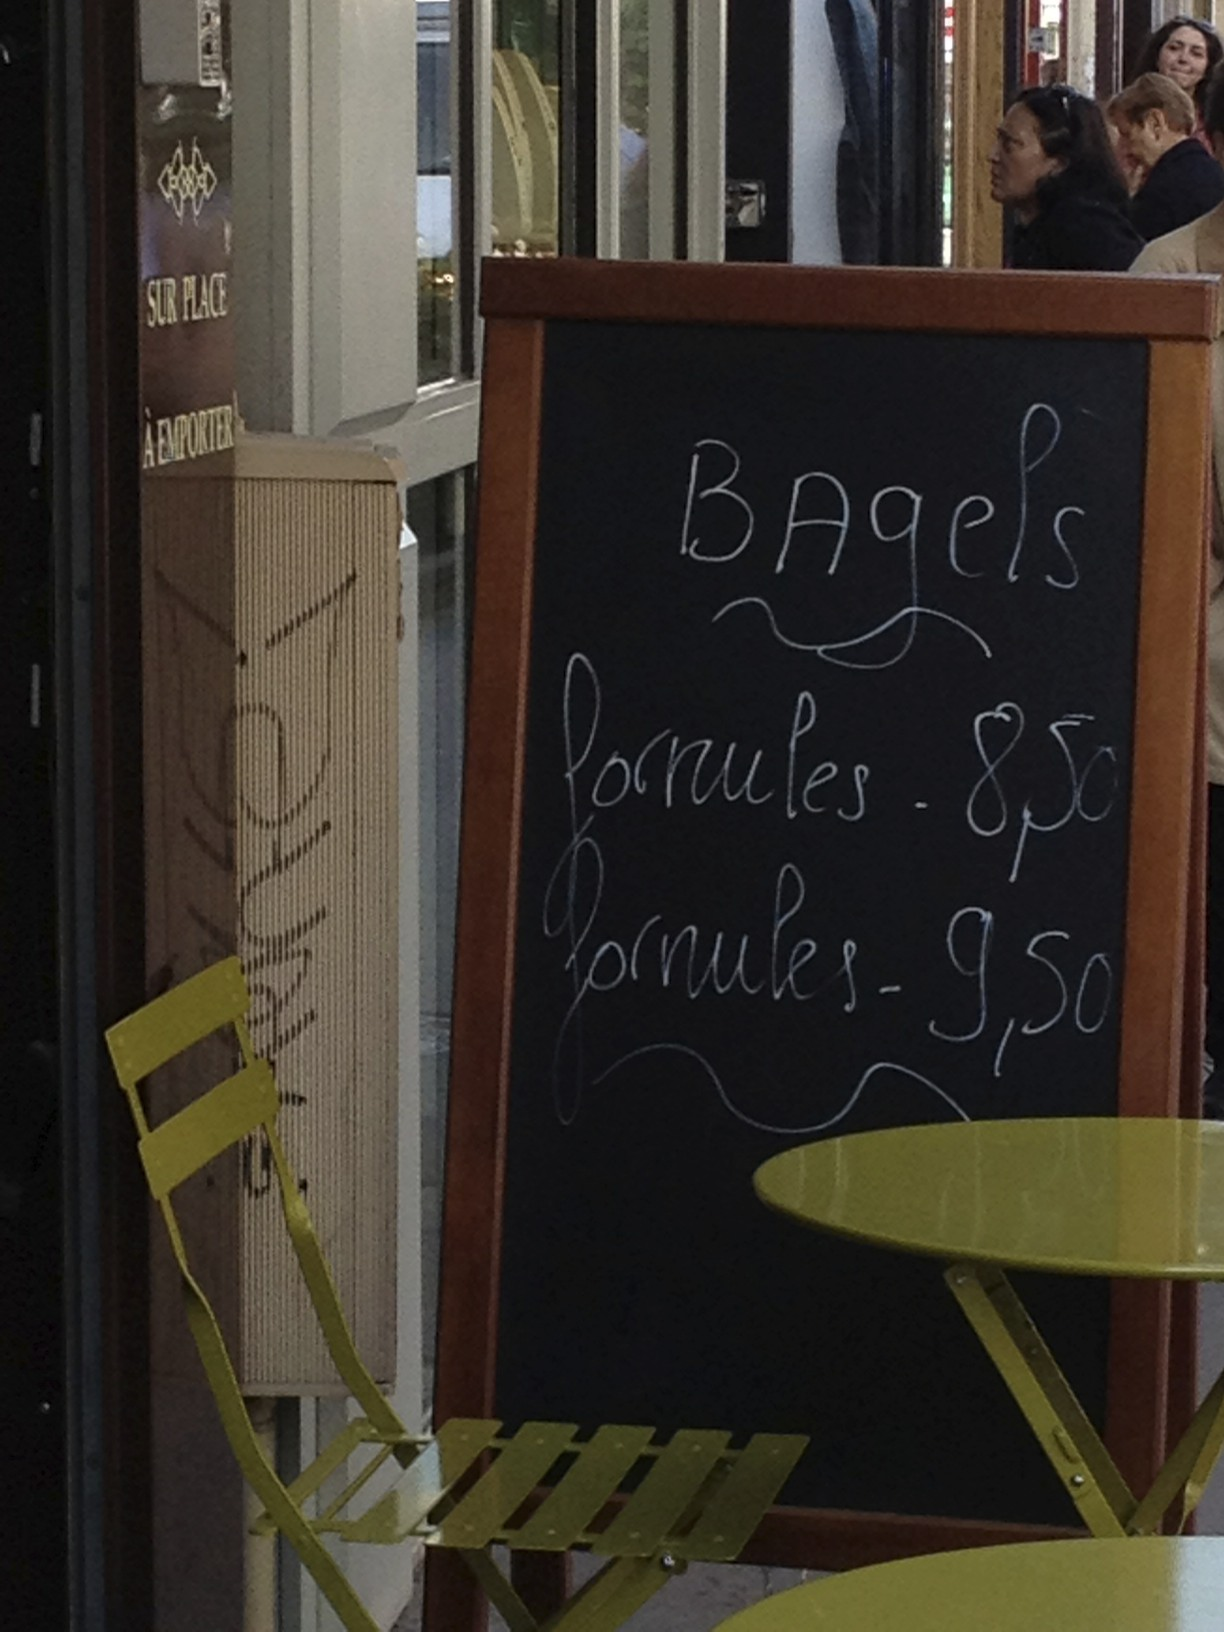 I came across this bagel joint in Paris in July…I didn't try it...